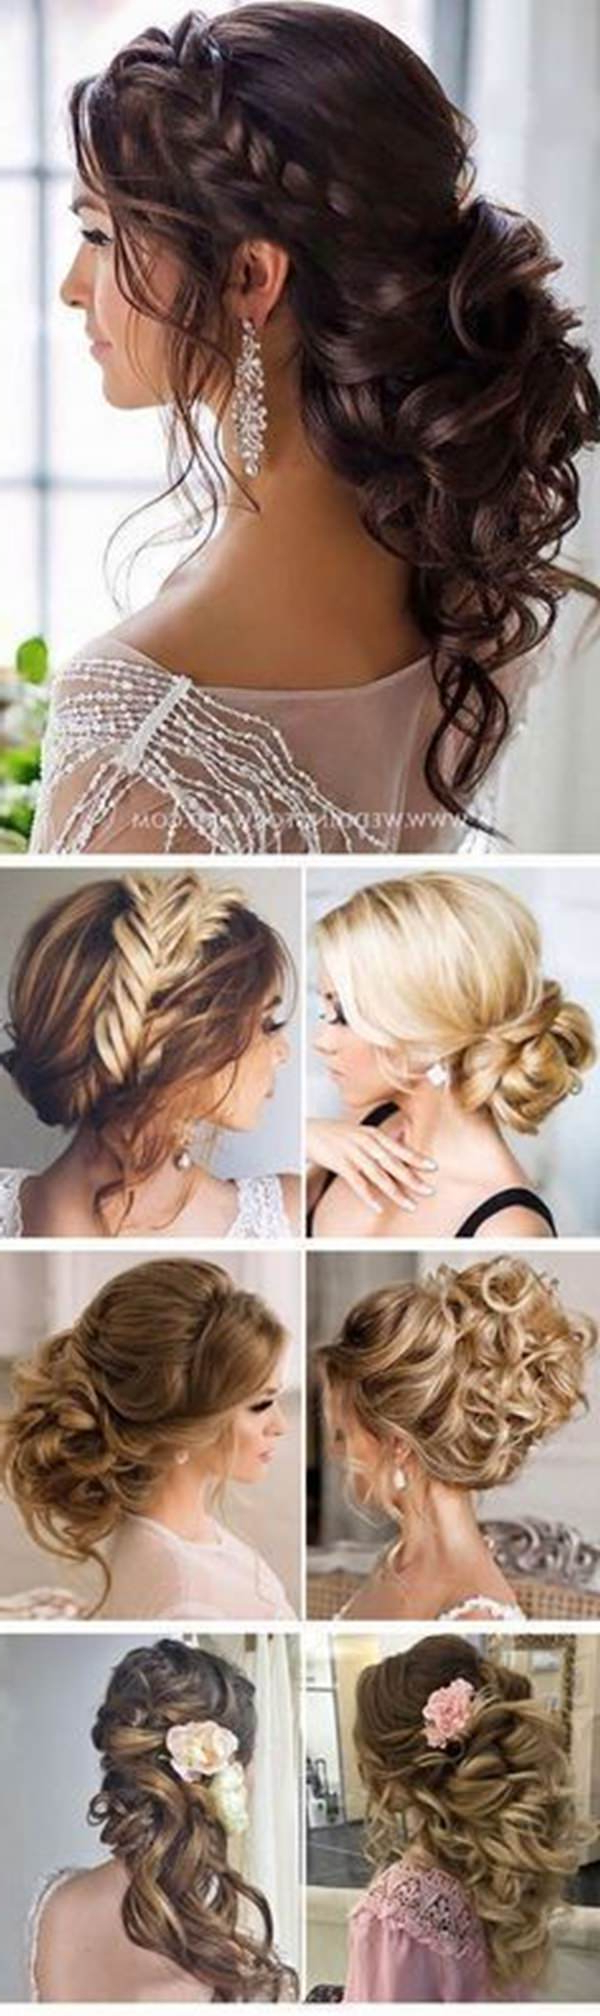 154 Updos For Long Hair Featuring Beautiful Braids And Buns In Newest Gorgeous Waved Prom Updos For Long Hair (View 1 of 20)